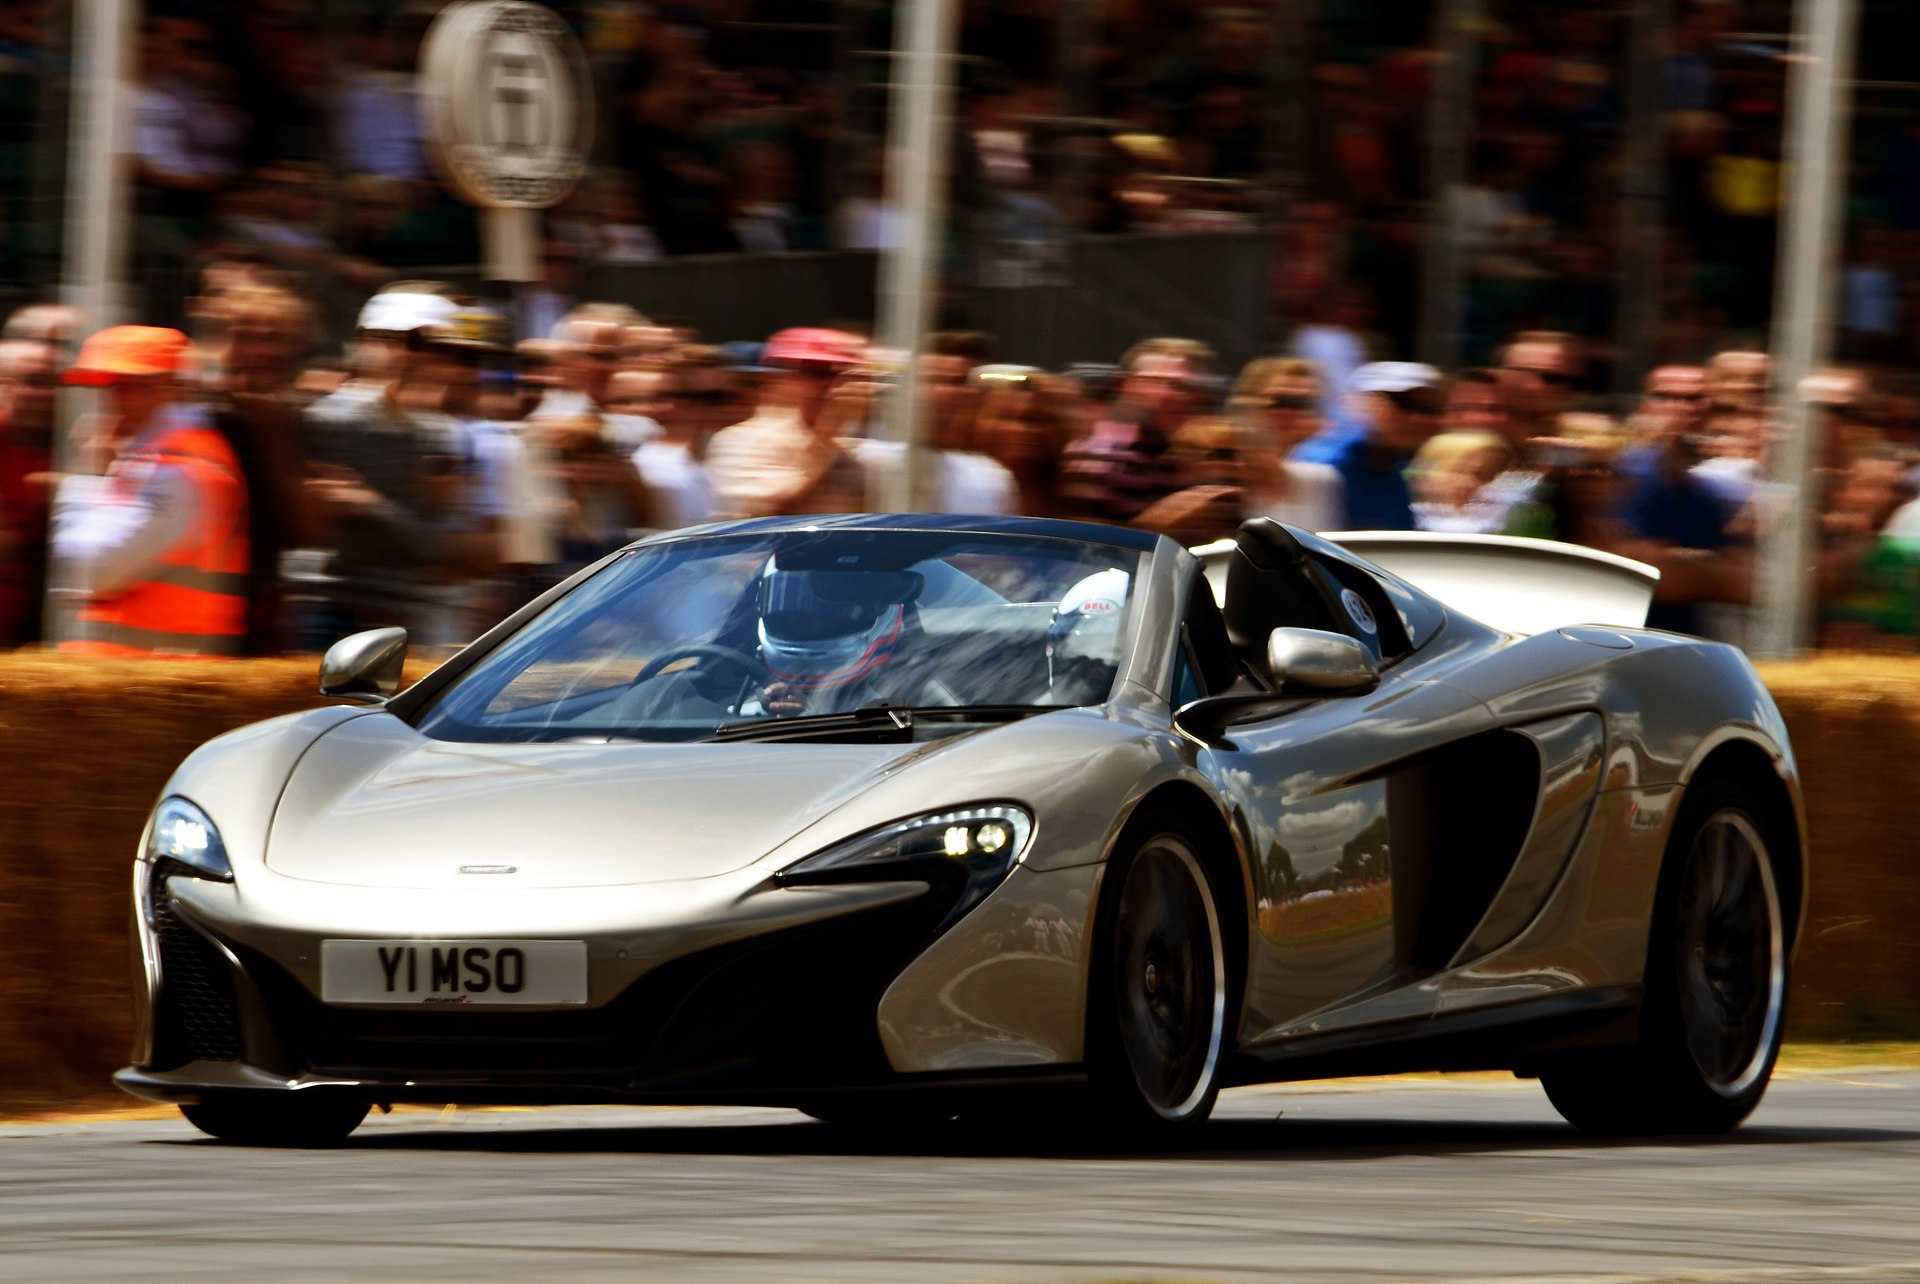 mclaren mercedes mp4 25 with Mclaren 650s on Kali Linux Dragon 090946f7886ae7cf additionally Photo 25 besides By The Numbers Worlds Greatest Drag Race 1 4 together with Watch additionally 605 Mclaren Formula 1 2014 Car Wallpaper 4.